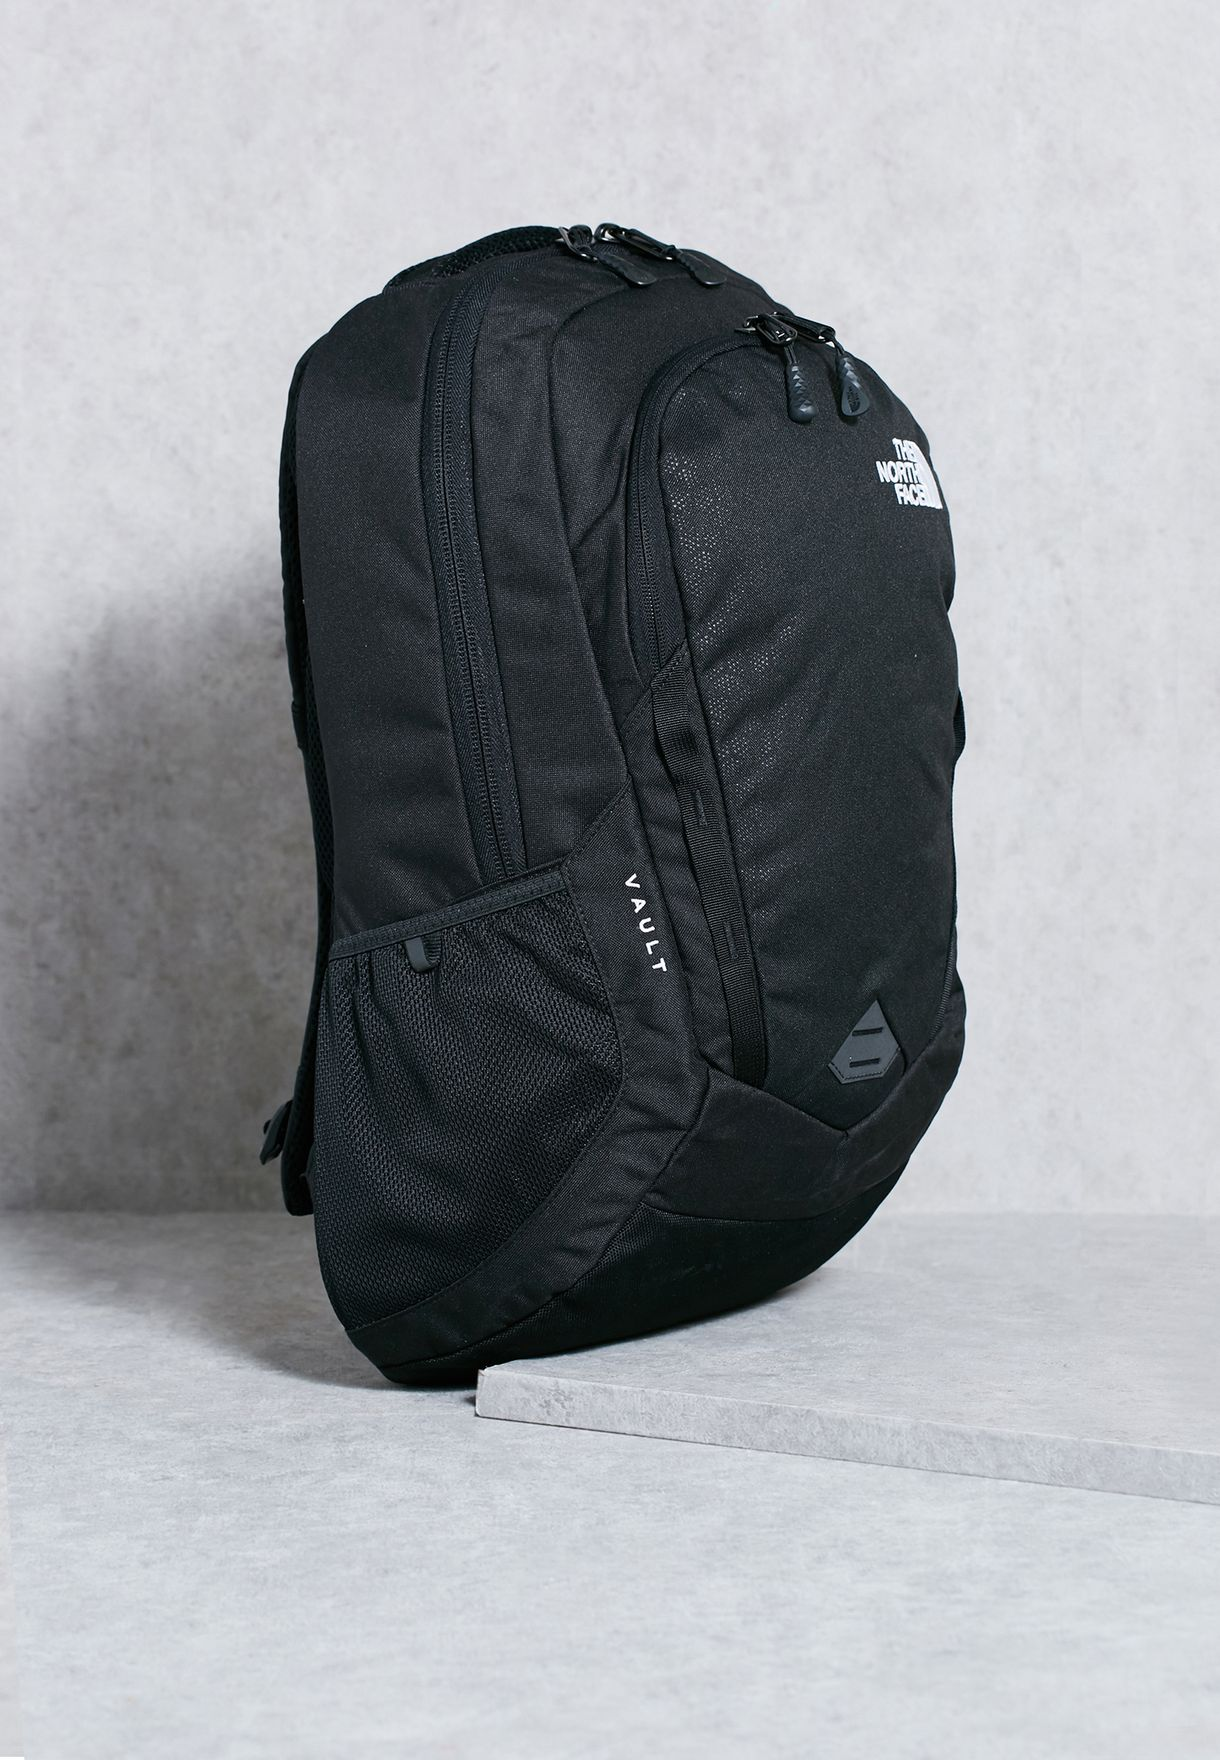 6a5c5bee6 Vault Backpack